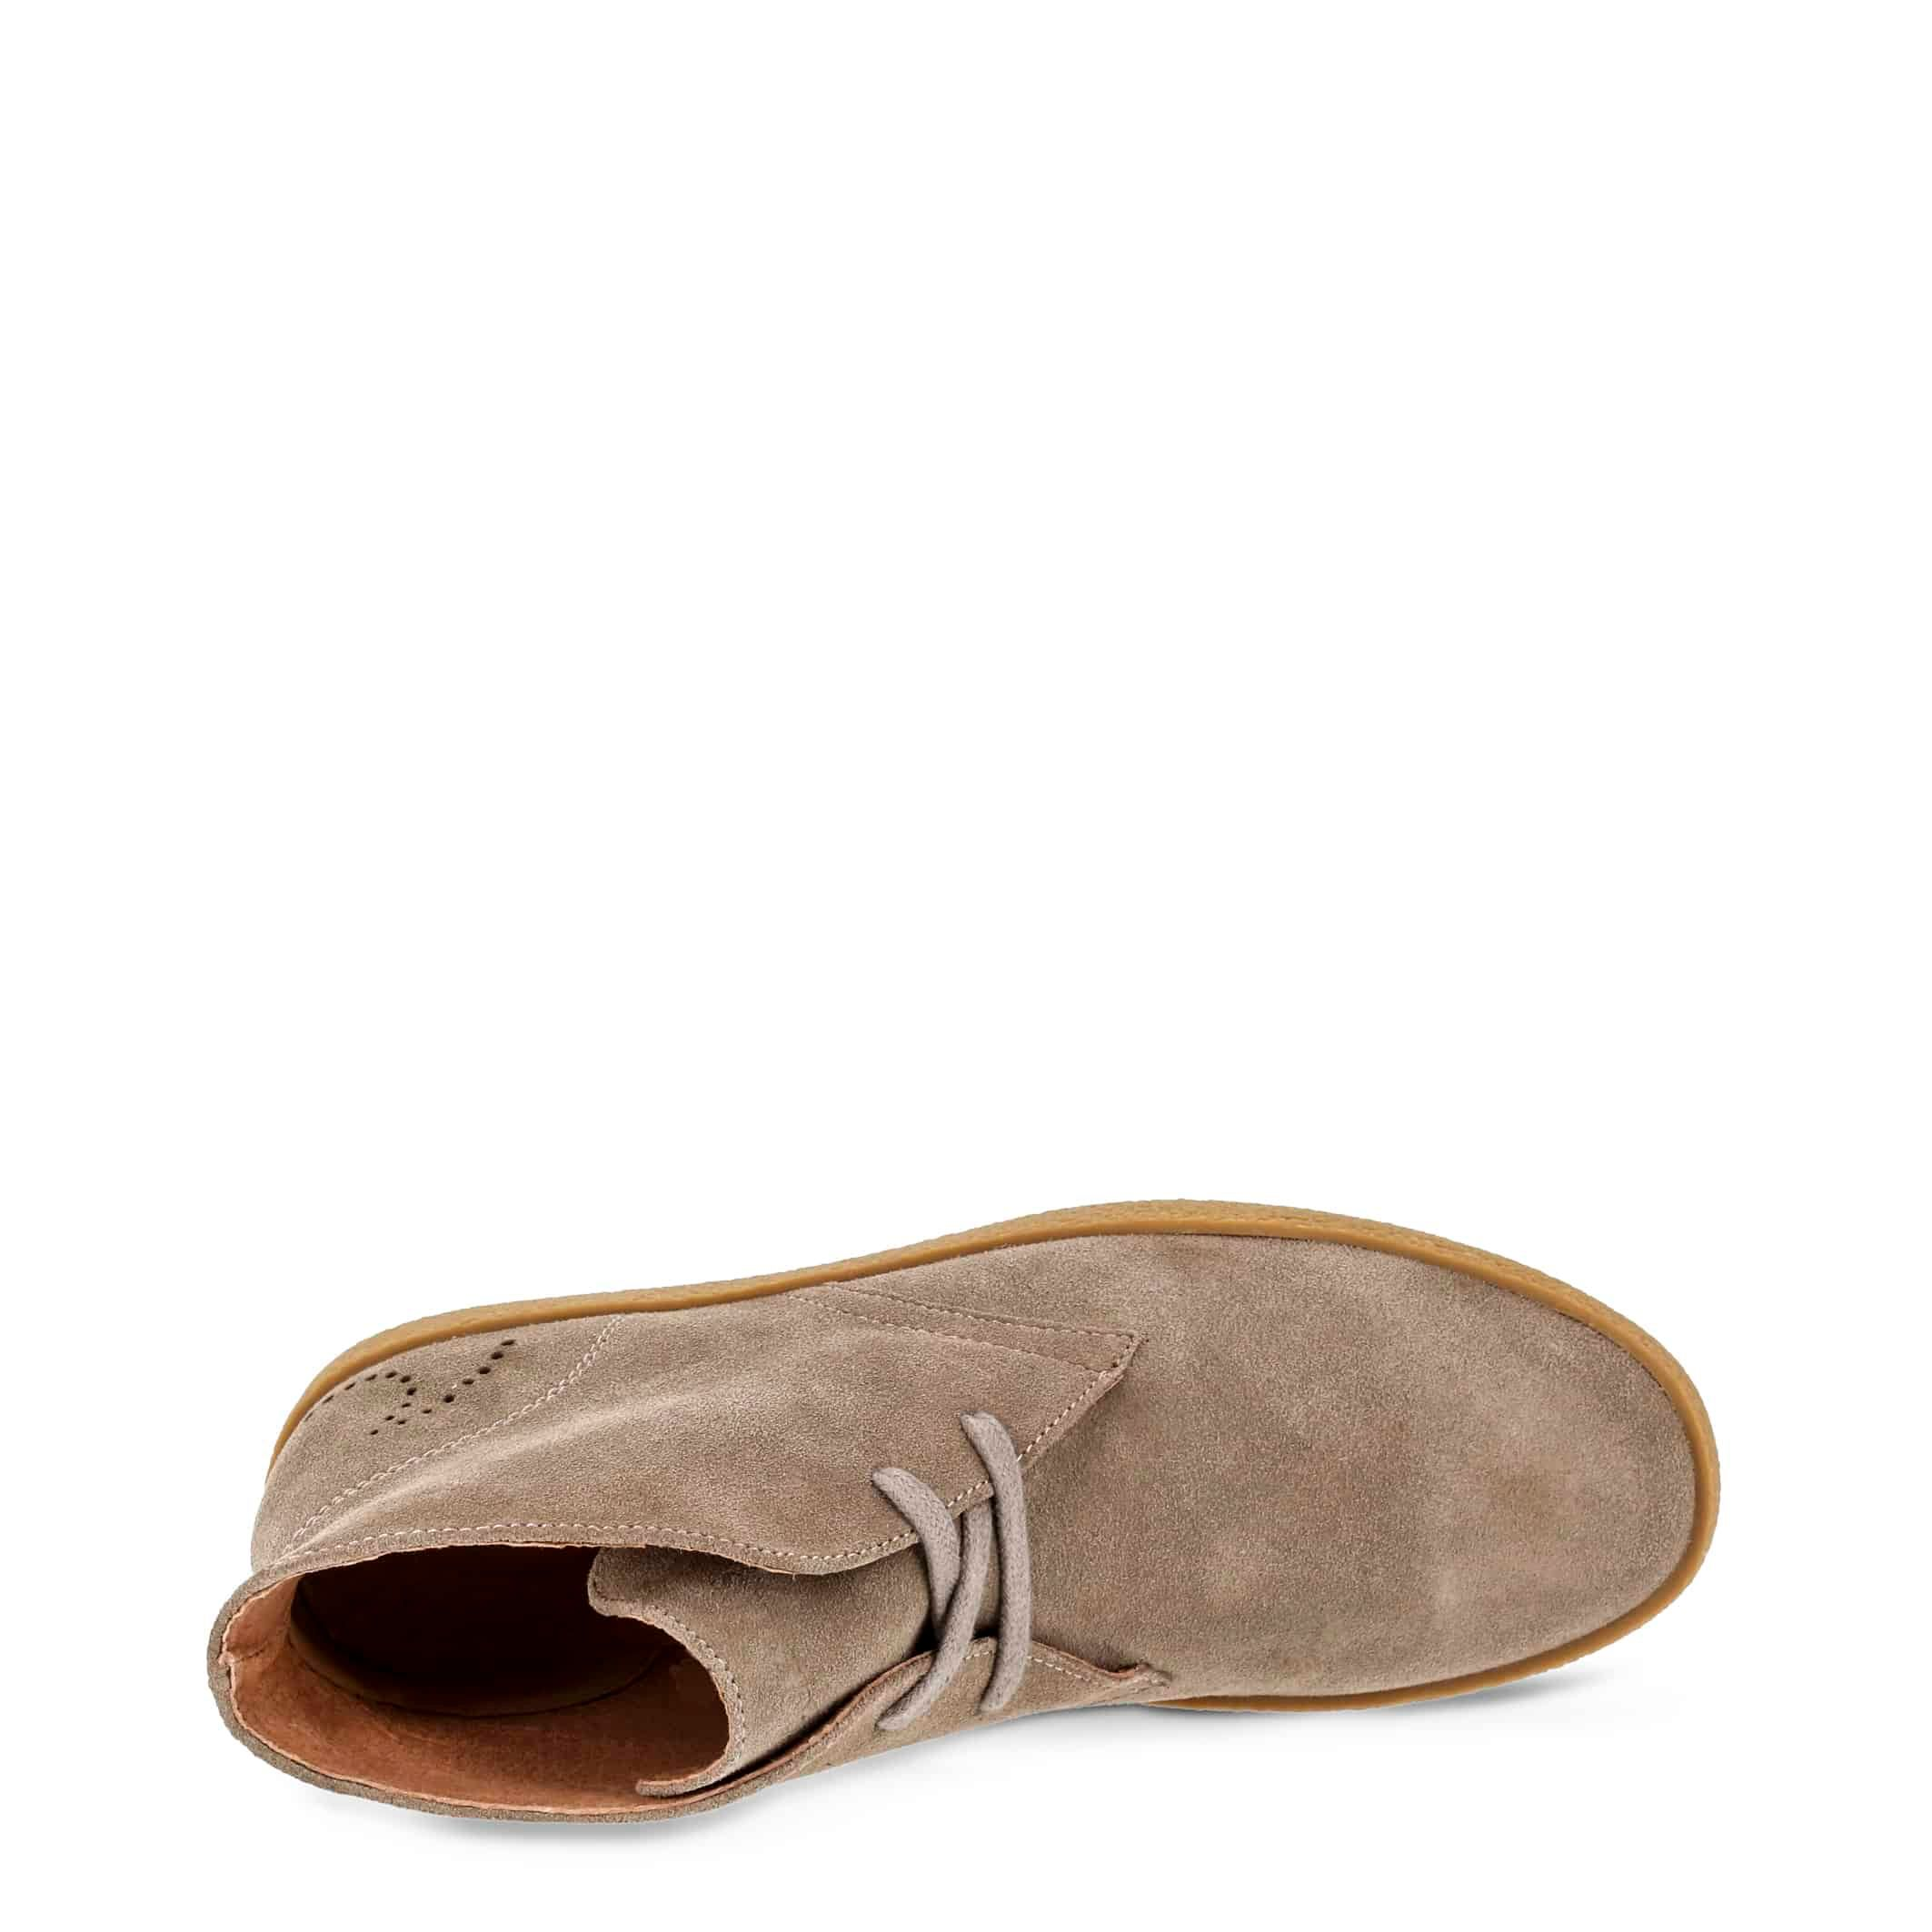 Chaussures à lacets Docksteps – NEWSALINAS-MID_2126_BROWN